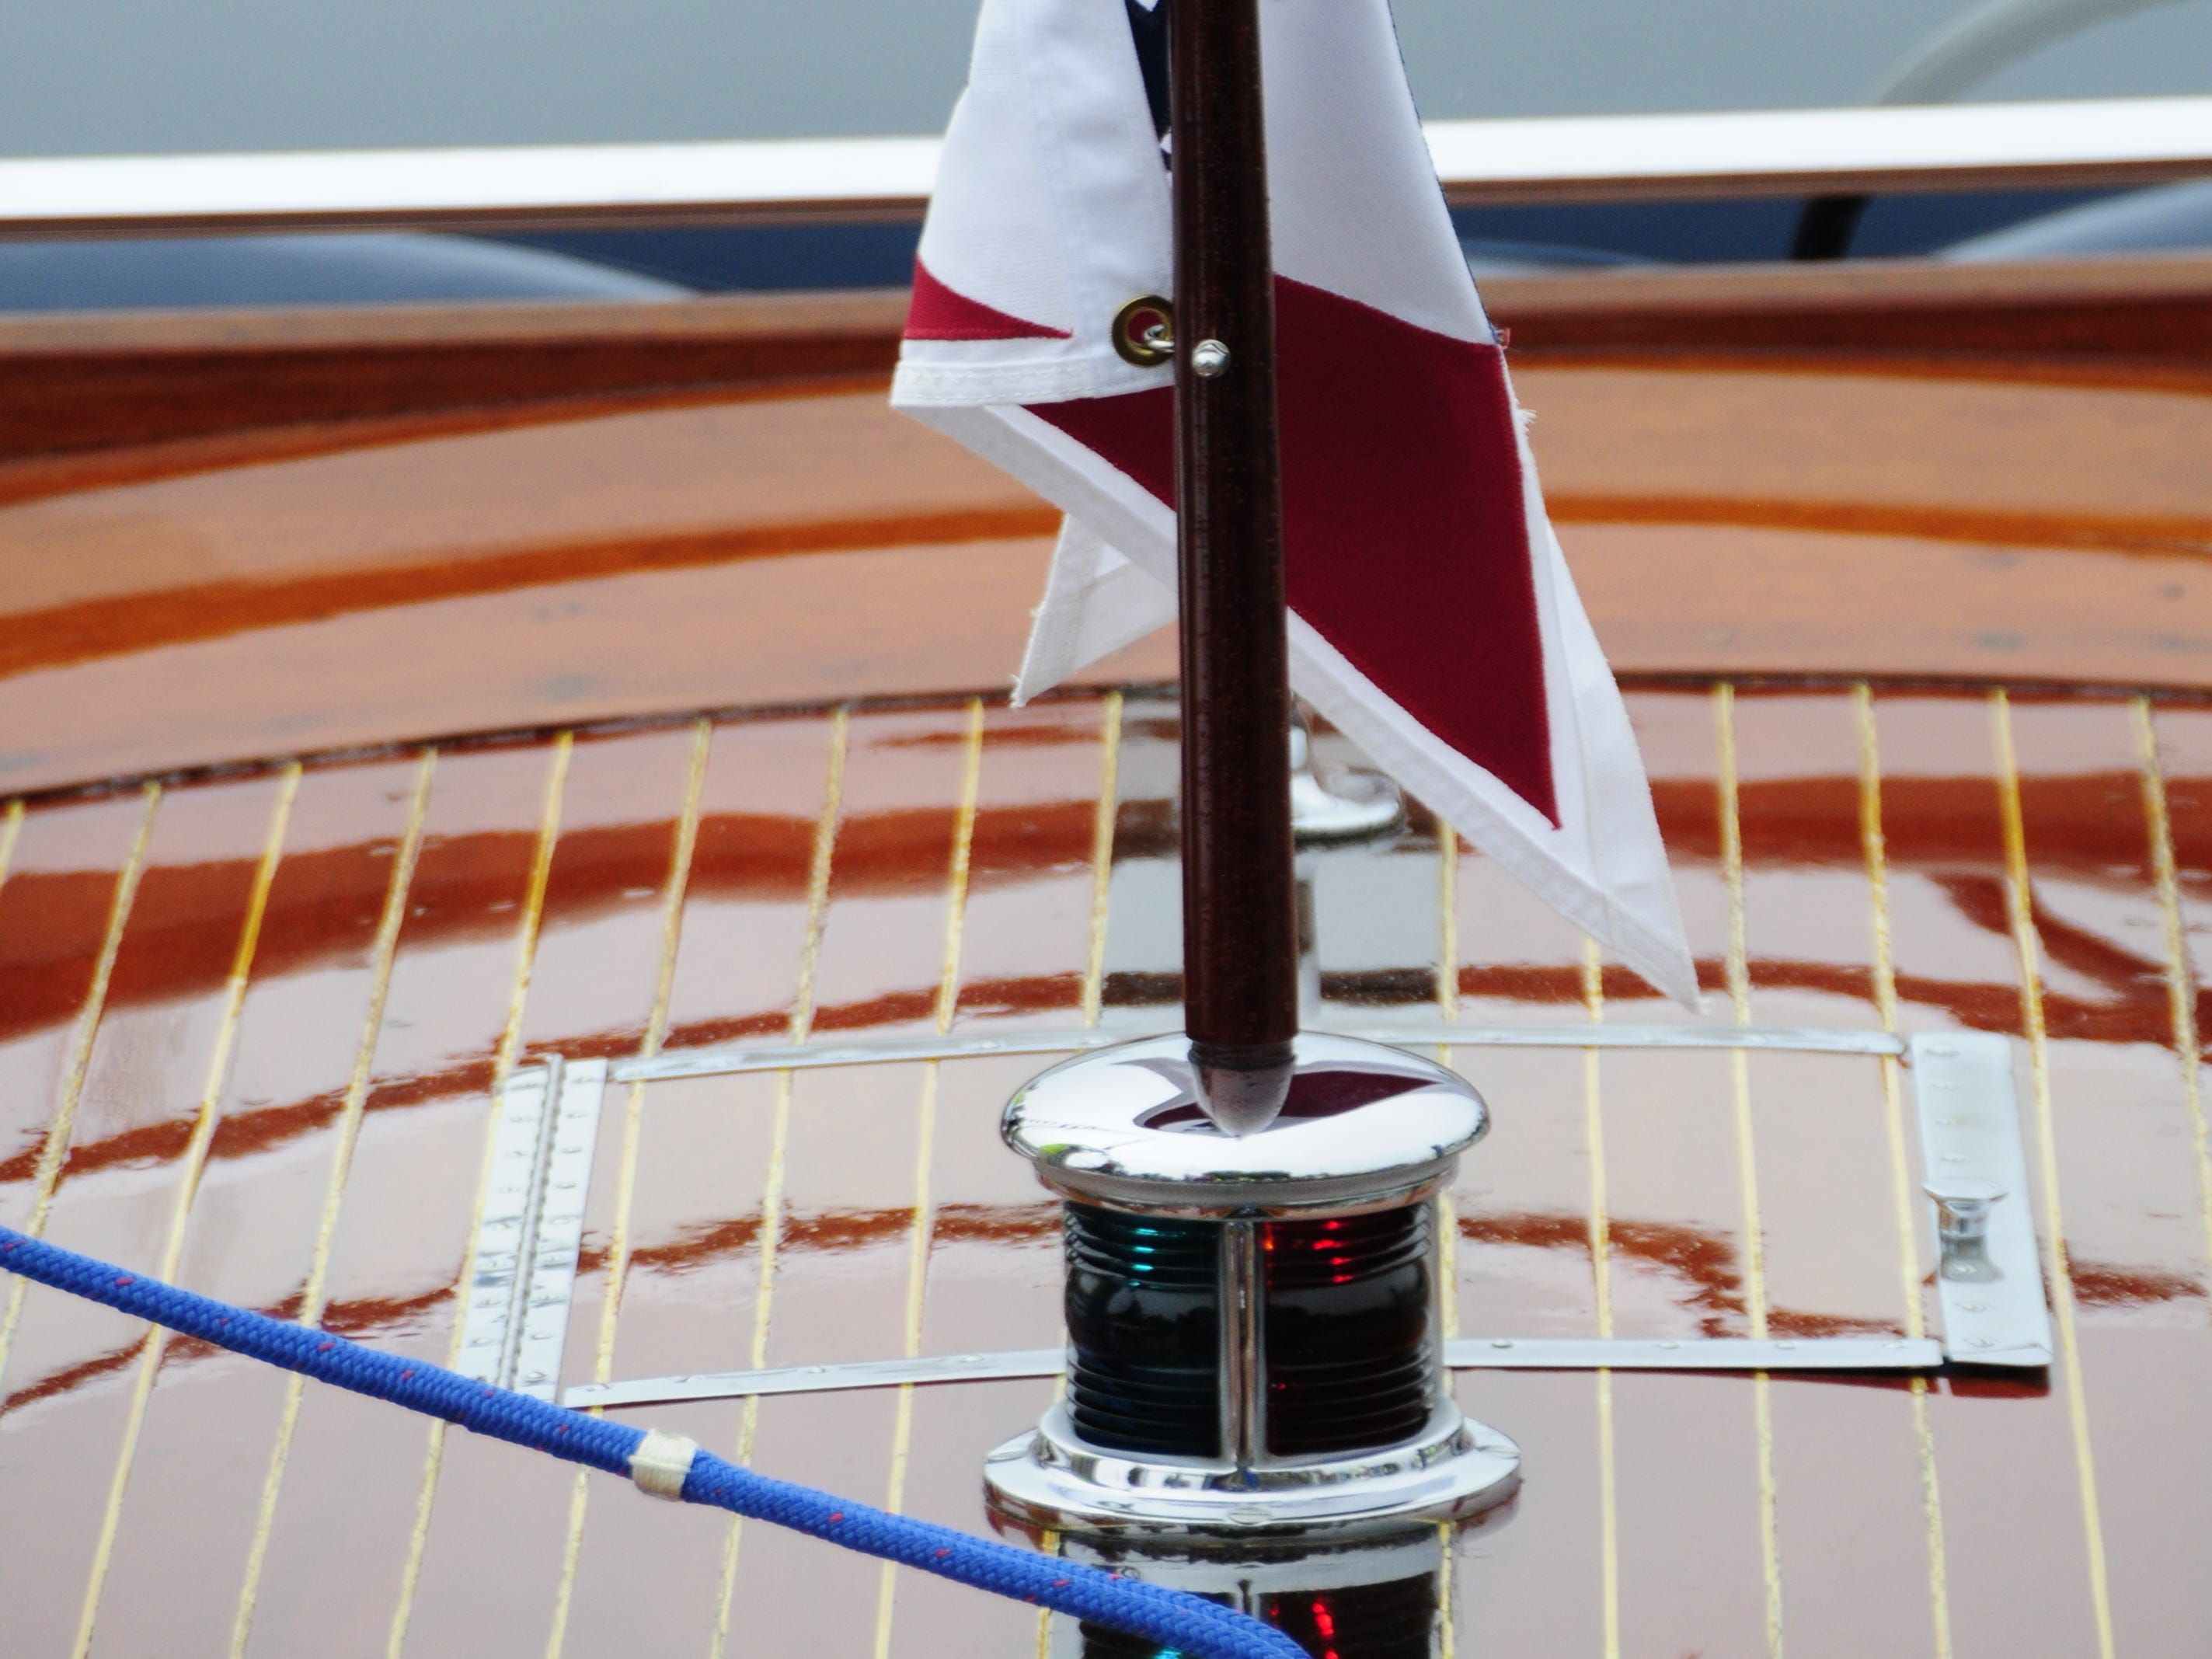 A pennant flies from the bow of a boat during the Antique and Classic Boat Society International Boat Show on Saturday, Sept. 15, 2018.